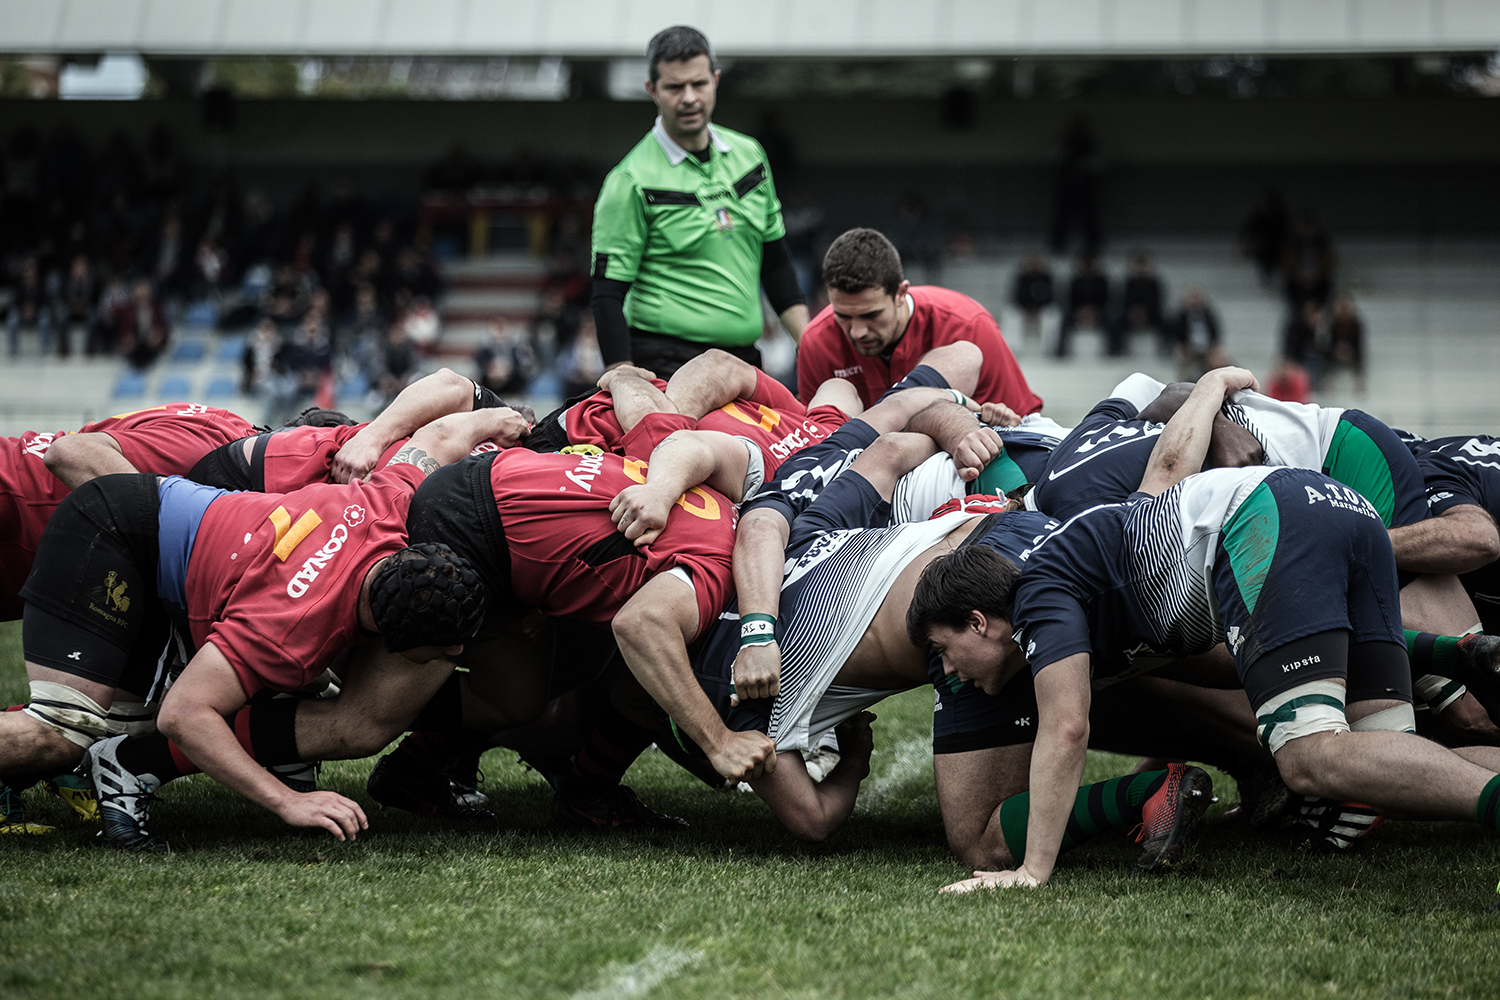 rugby_photograph_04.jpg